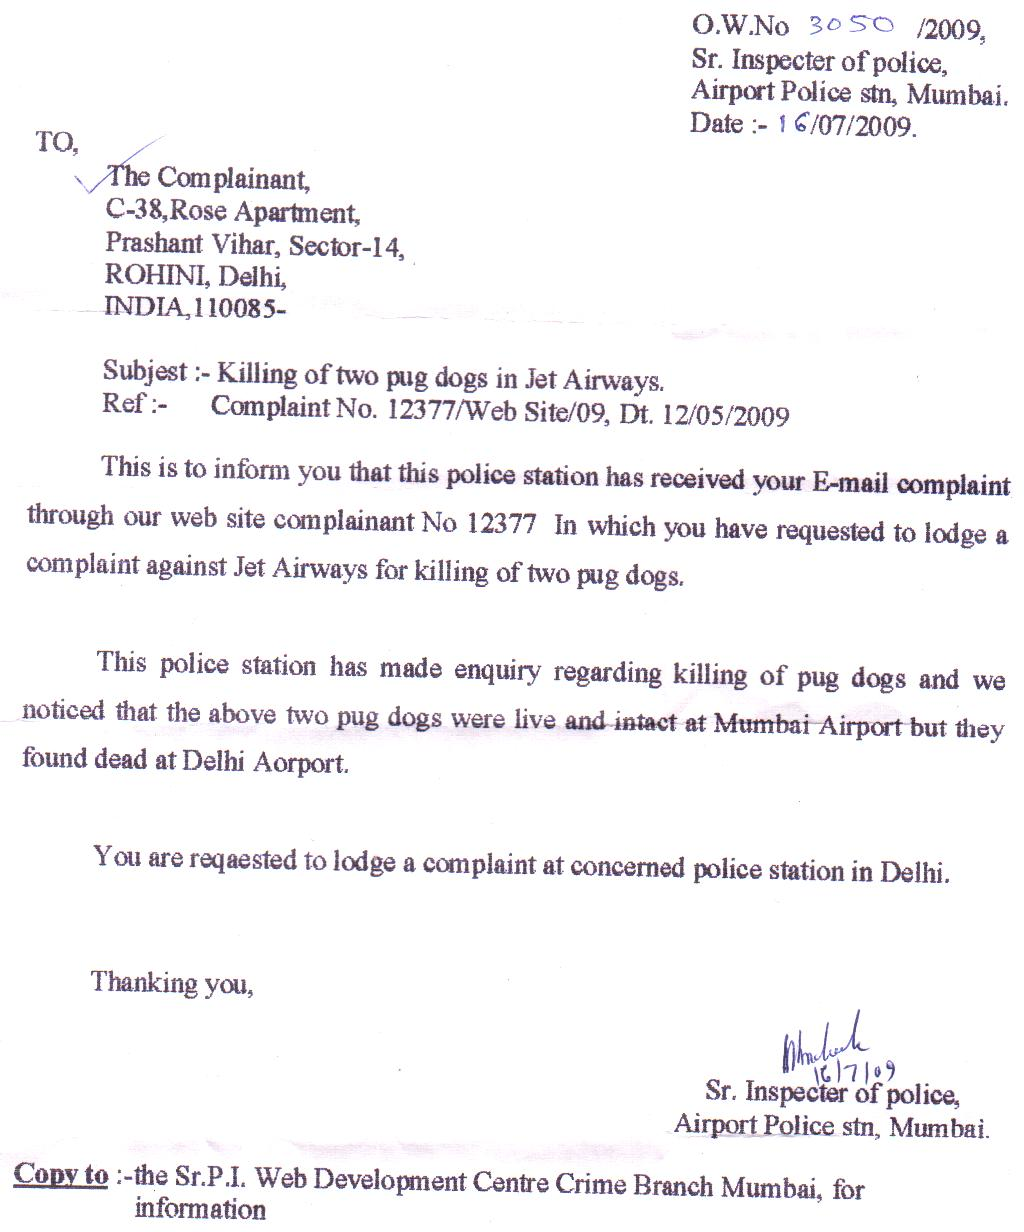 Open complaint against jet airways for one pair pug killing mumbai police investigation report about killing of pug pair during jet airways spiritdancerdesigns Image collections